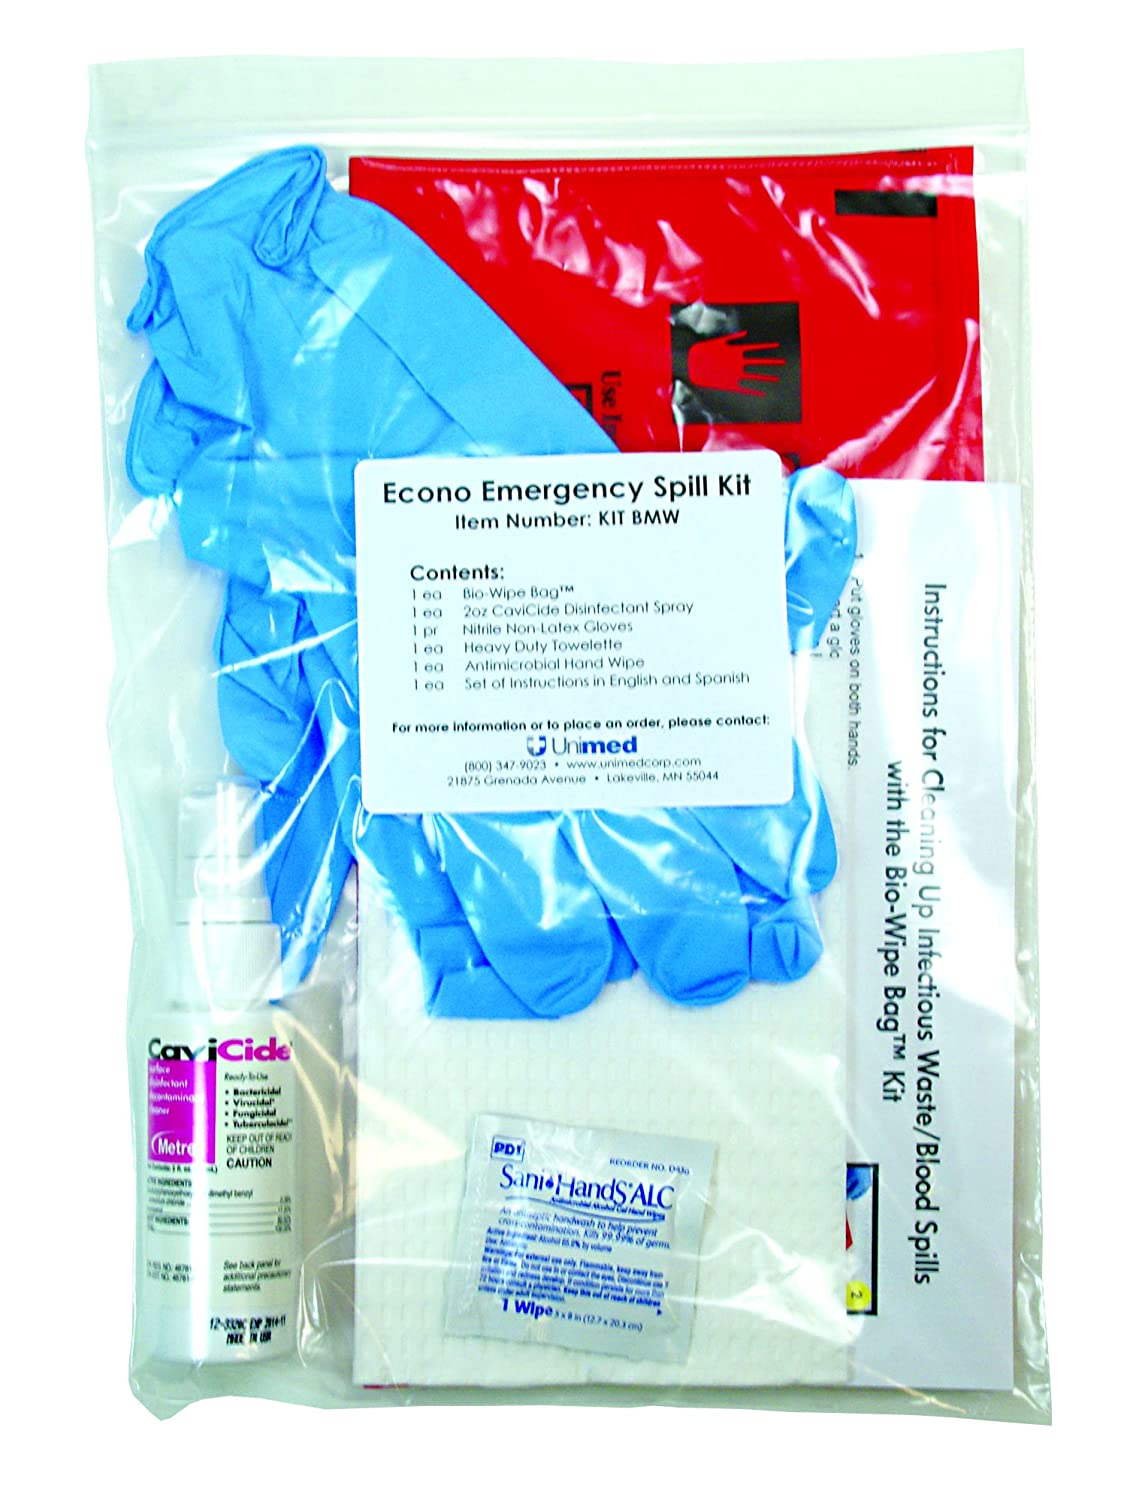 Blood spill kit | jail and correctional supplies.